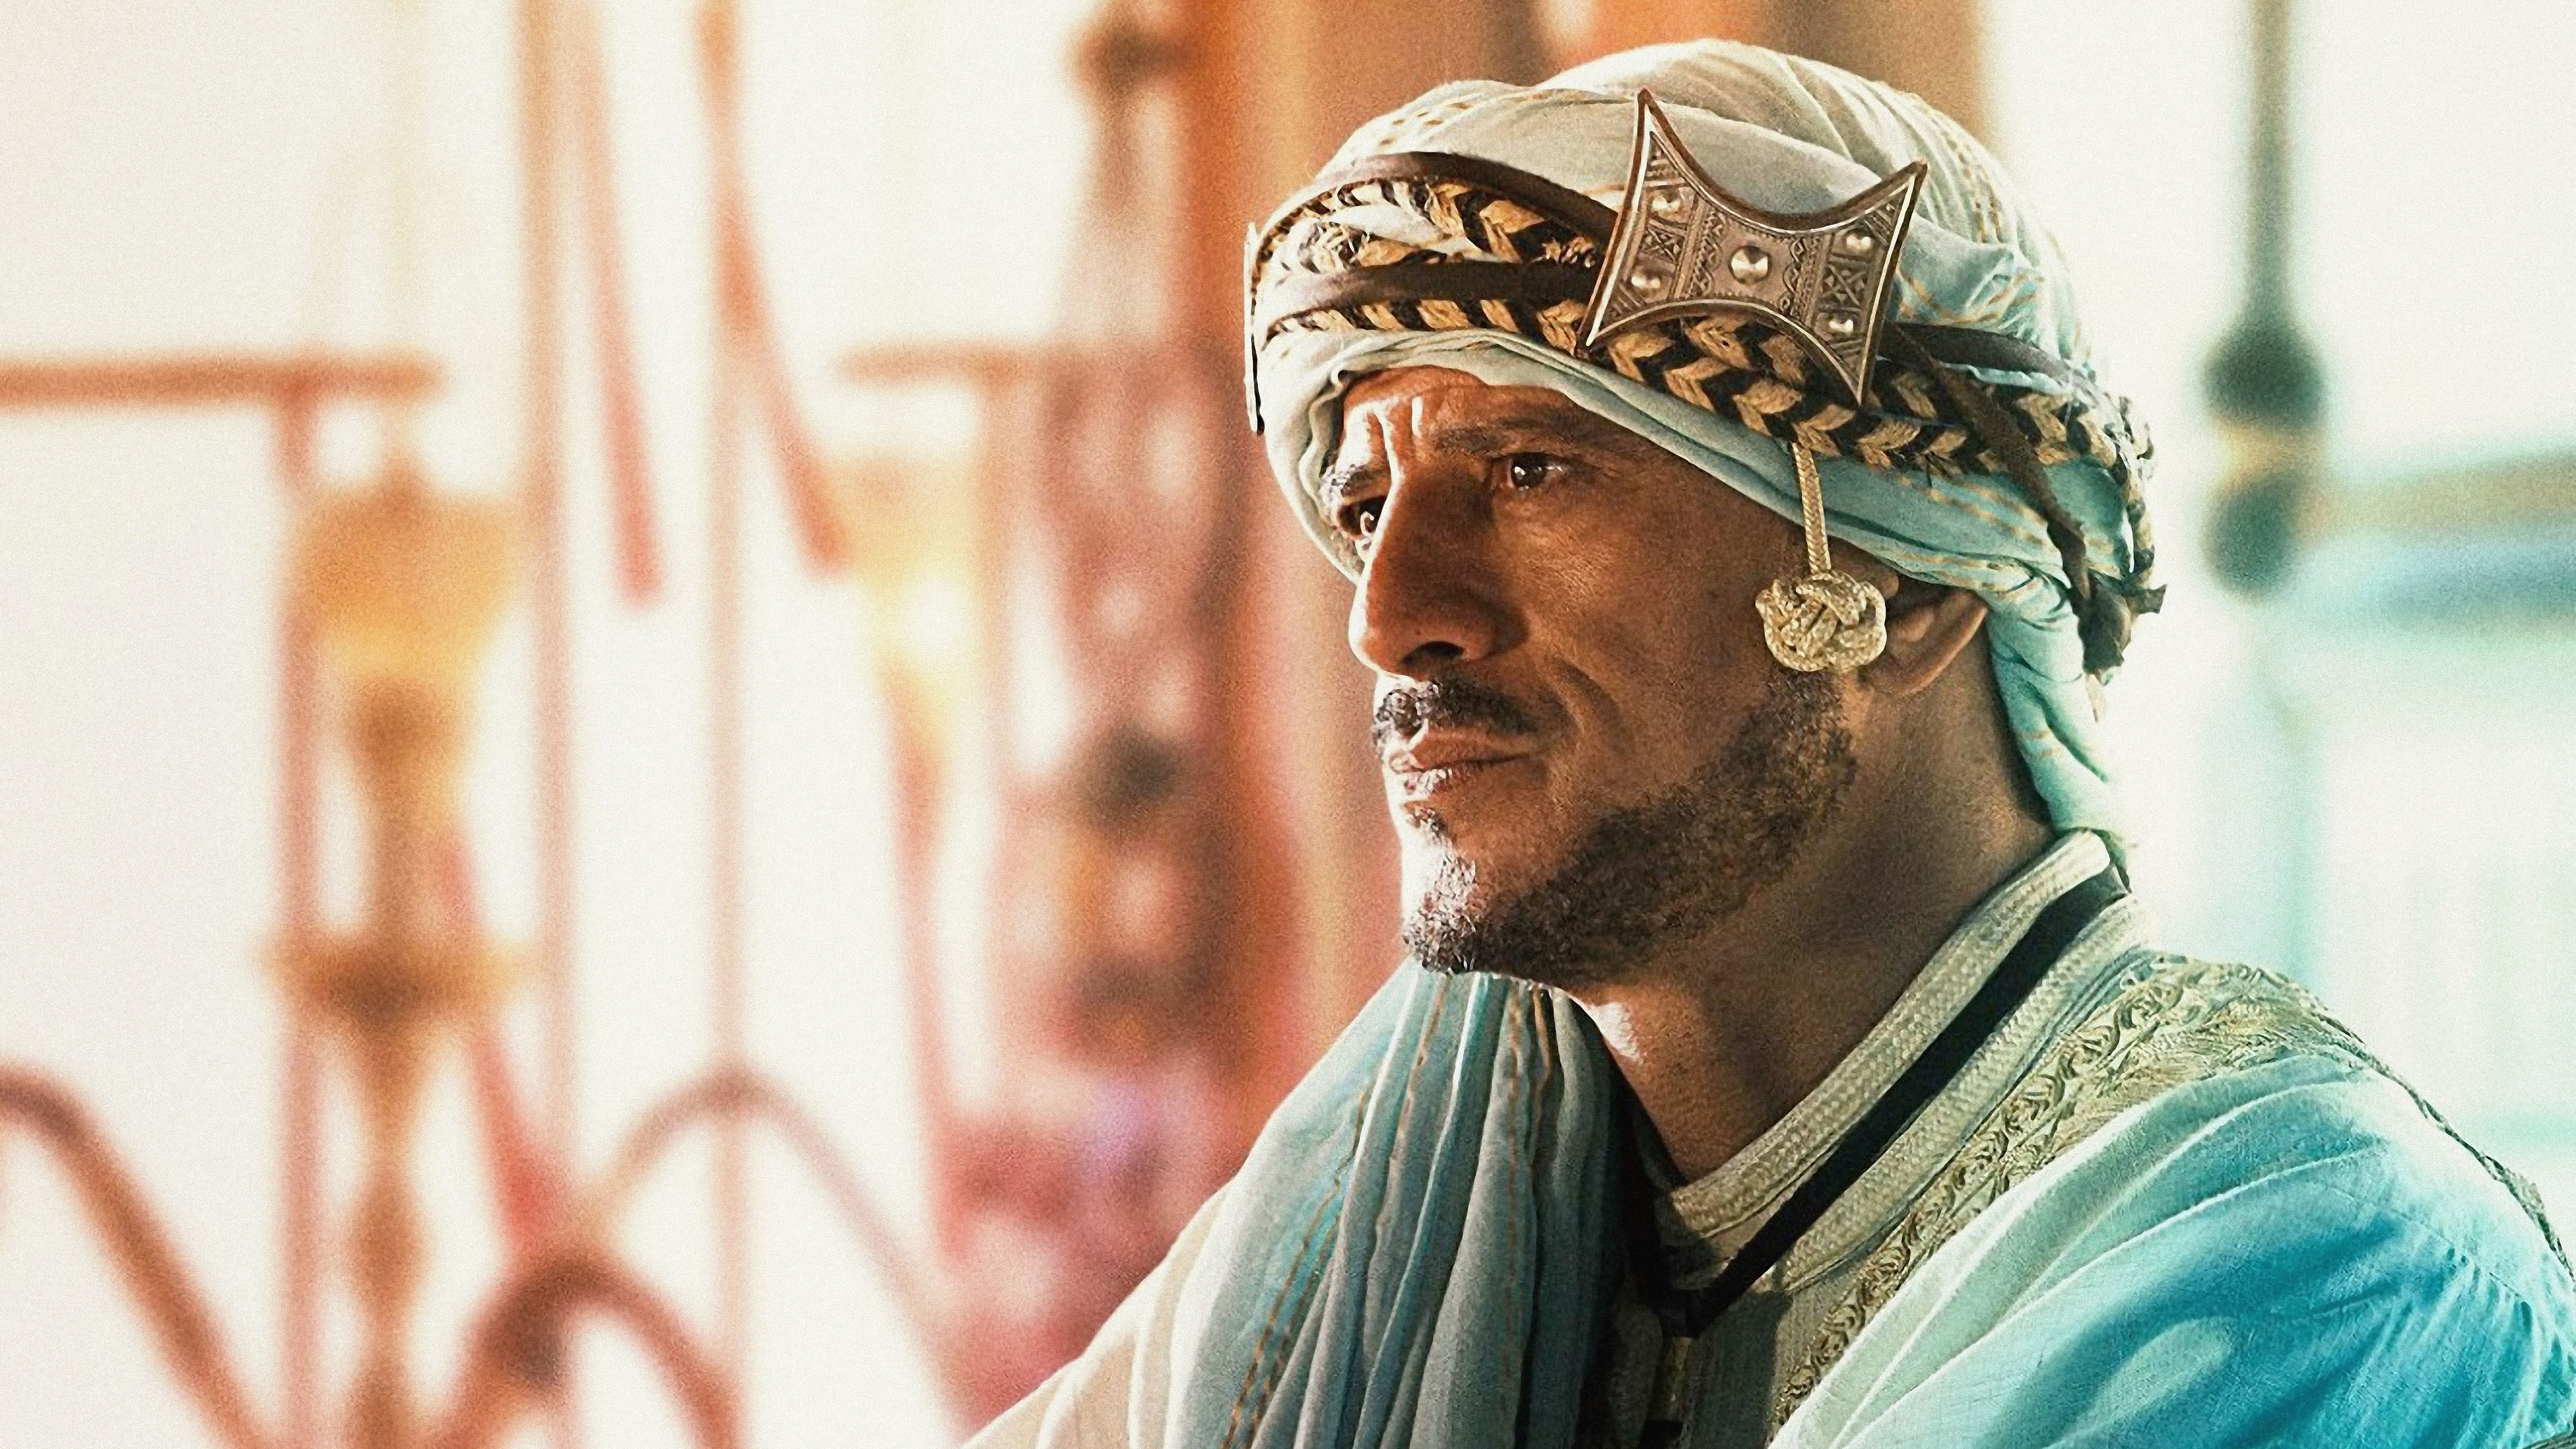 said taghmaoui in john wick chapter 3 parabellum 2019 4k 1555208396 - Said Taghmaoui In John Wick Chapter 3 Parabellum 2019 4k - movies wallpapers, john wick chapter 3 wallpapers, john wick 3 wallpapers, john wick 3 parabellum wallpapers, hd-wallpapers, 4k-wallpapers, 2019 movies wallpapers